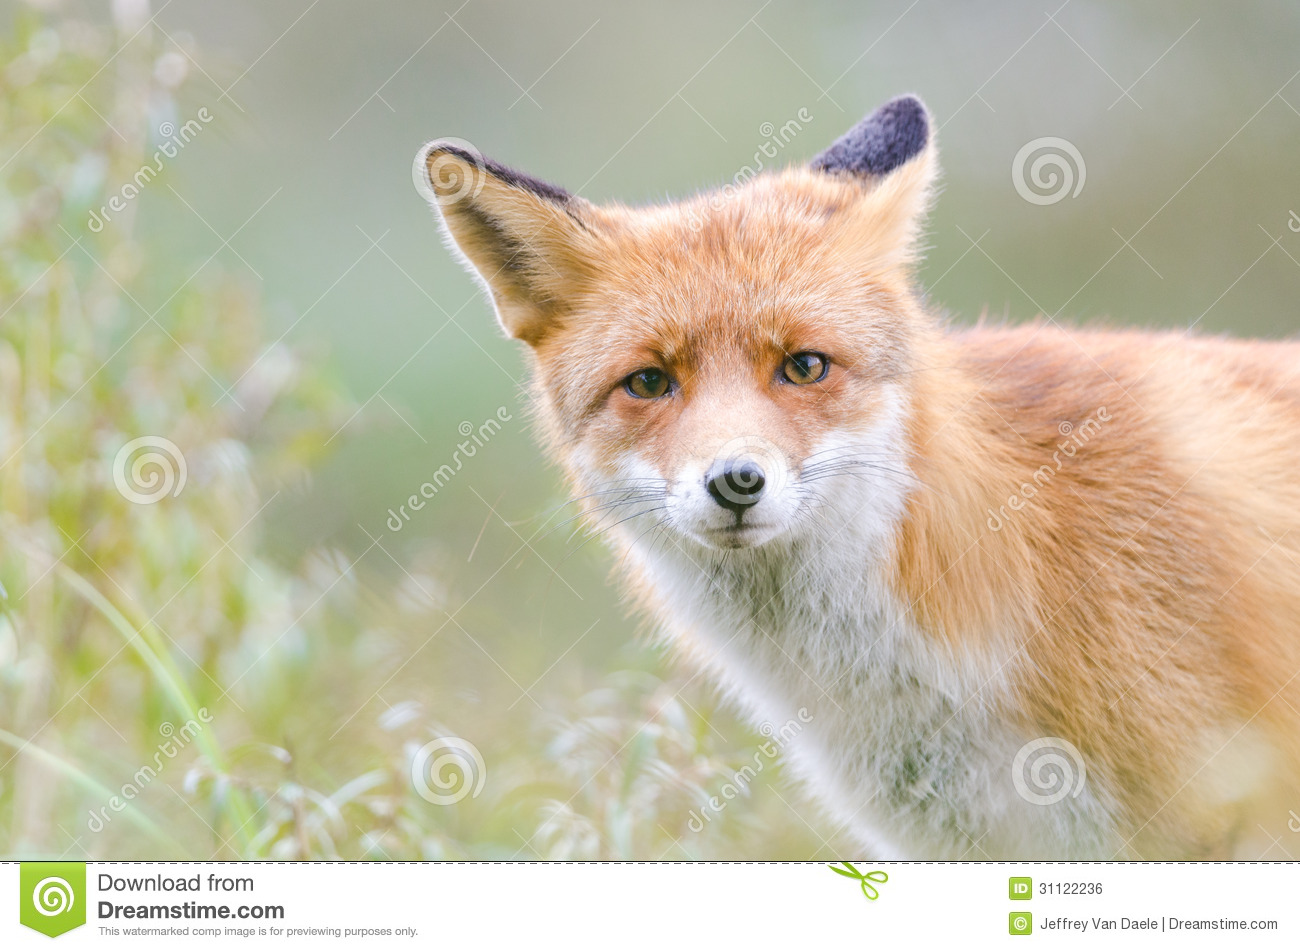 Free Stock Photos Royalty Free Red Fox Royalty Free Stock